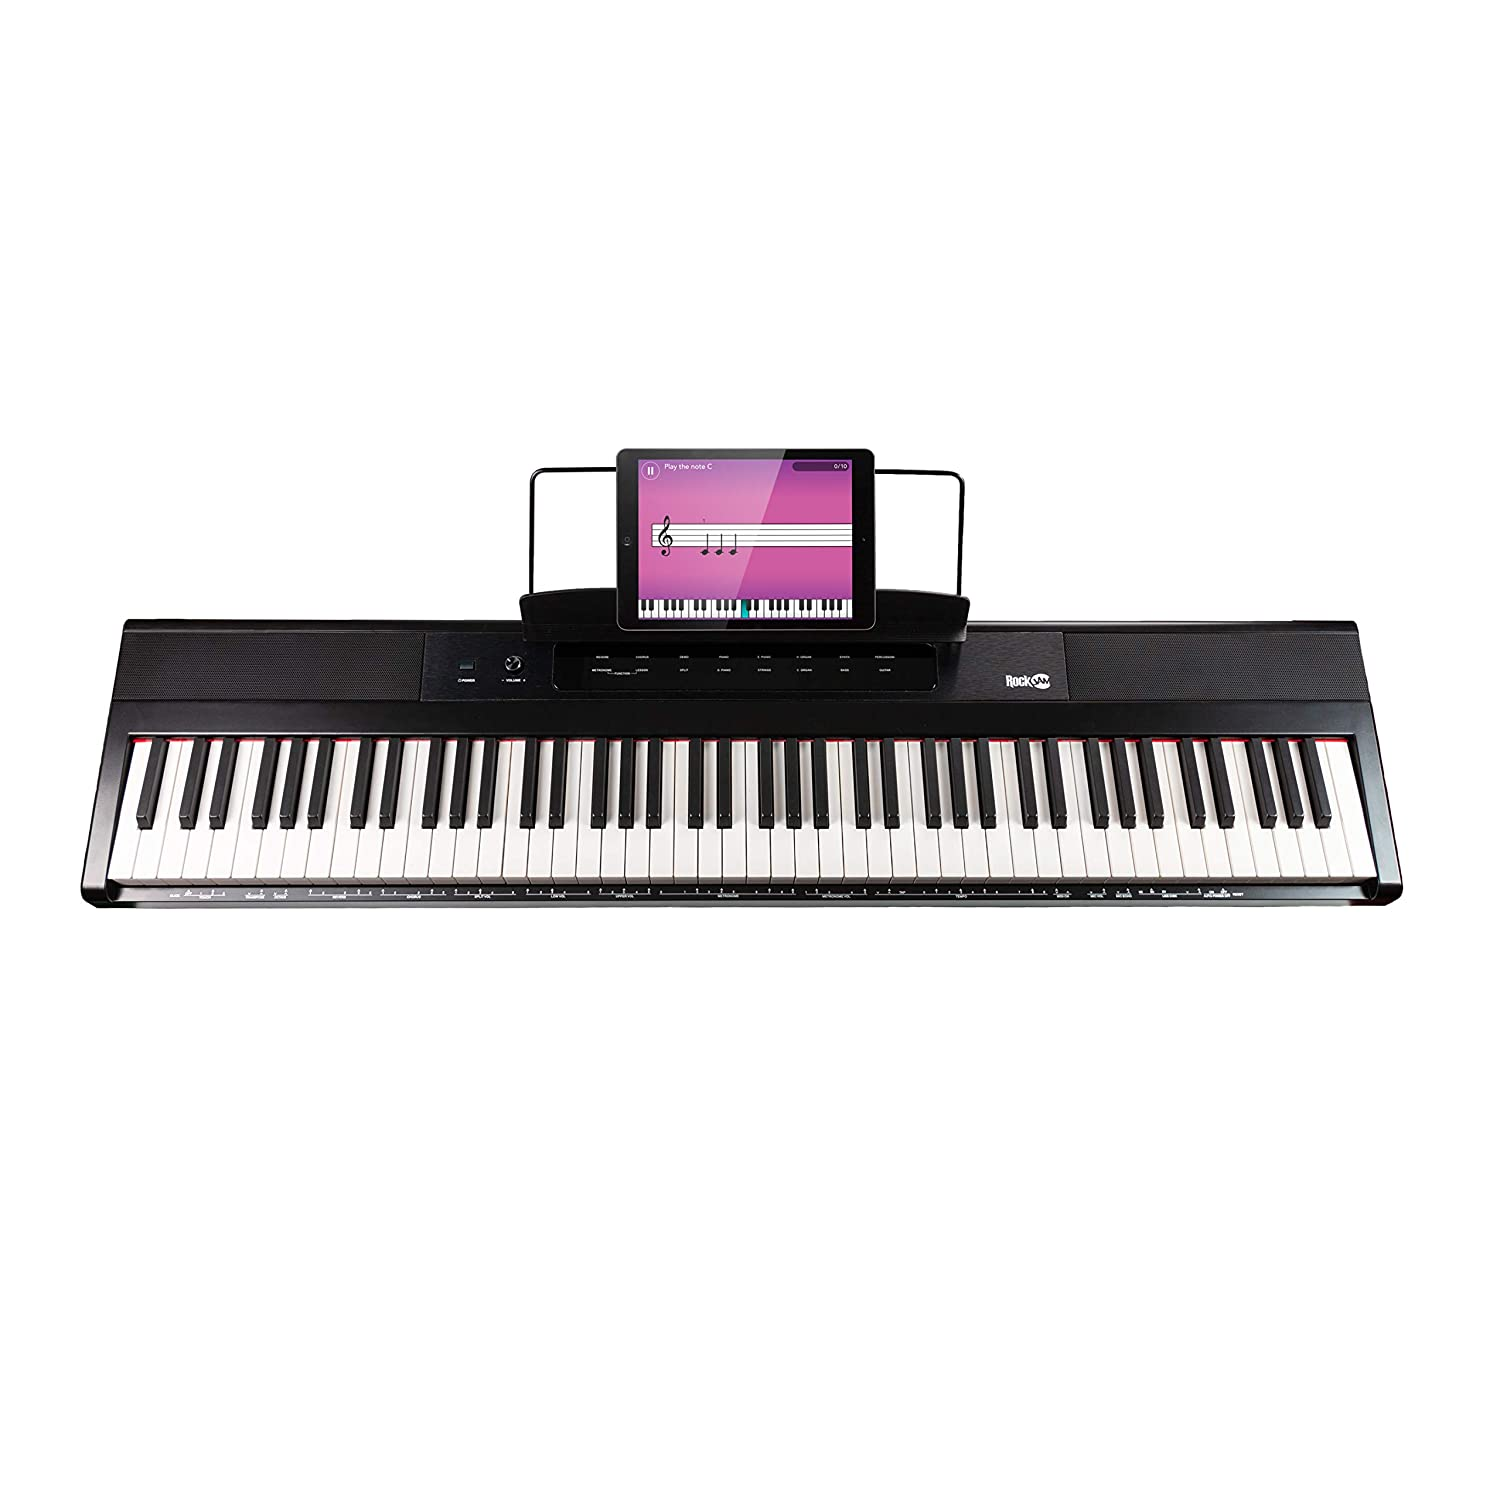 RockJam 88-Key Beginner Digital Piano / Keyboard with Full-Size Semi-Weighted Keys, Power Supply and Built-In Speakers RJ88DP